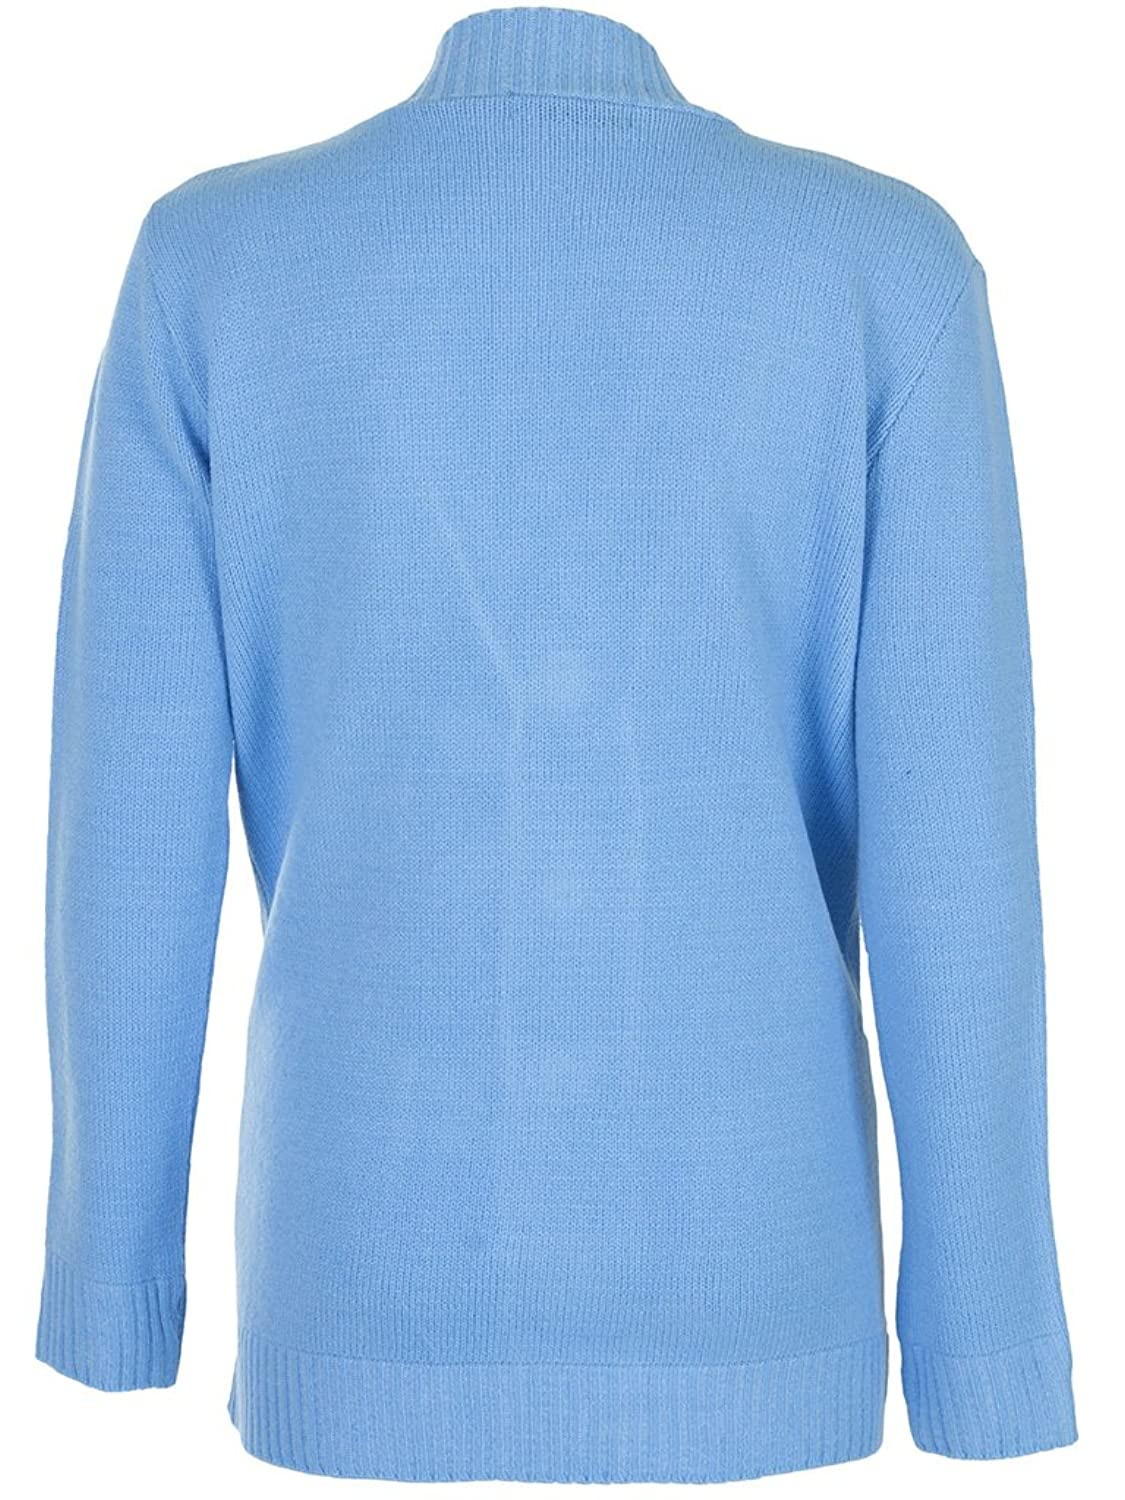 Love My Fashions Women's Womans Cable Knit Cardigan Medium / Large Sky Blue